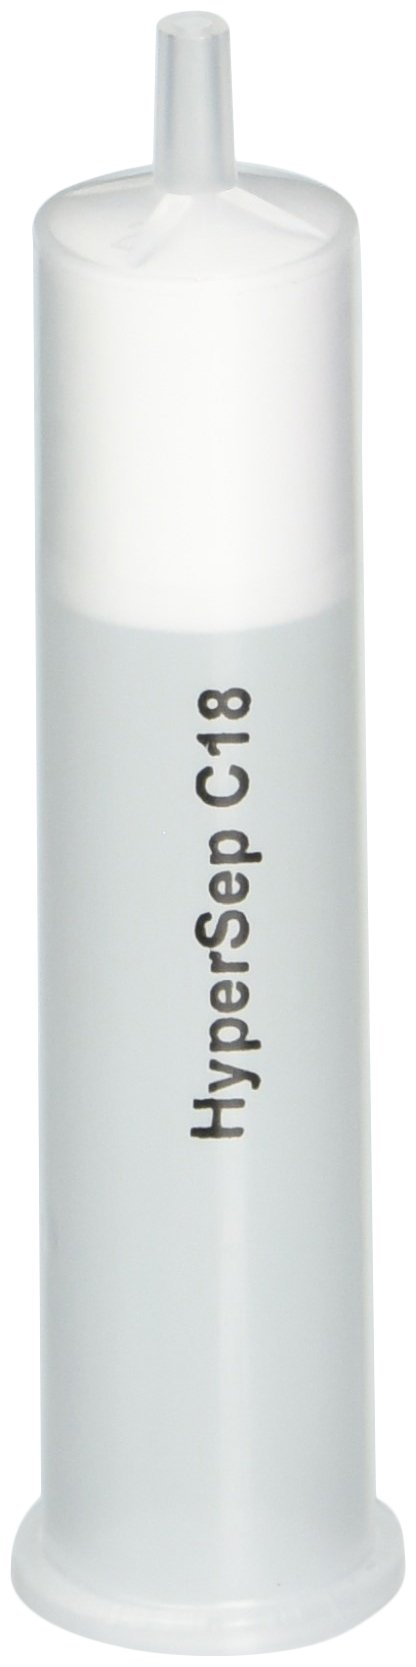 Thermo Chromatography 60108-701 HyperSep C18 Extraction Column, 2 g Bed Weight, 15 ml Column Volume (Pack of 20)